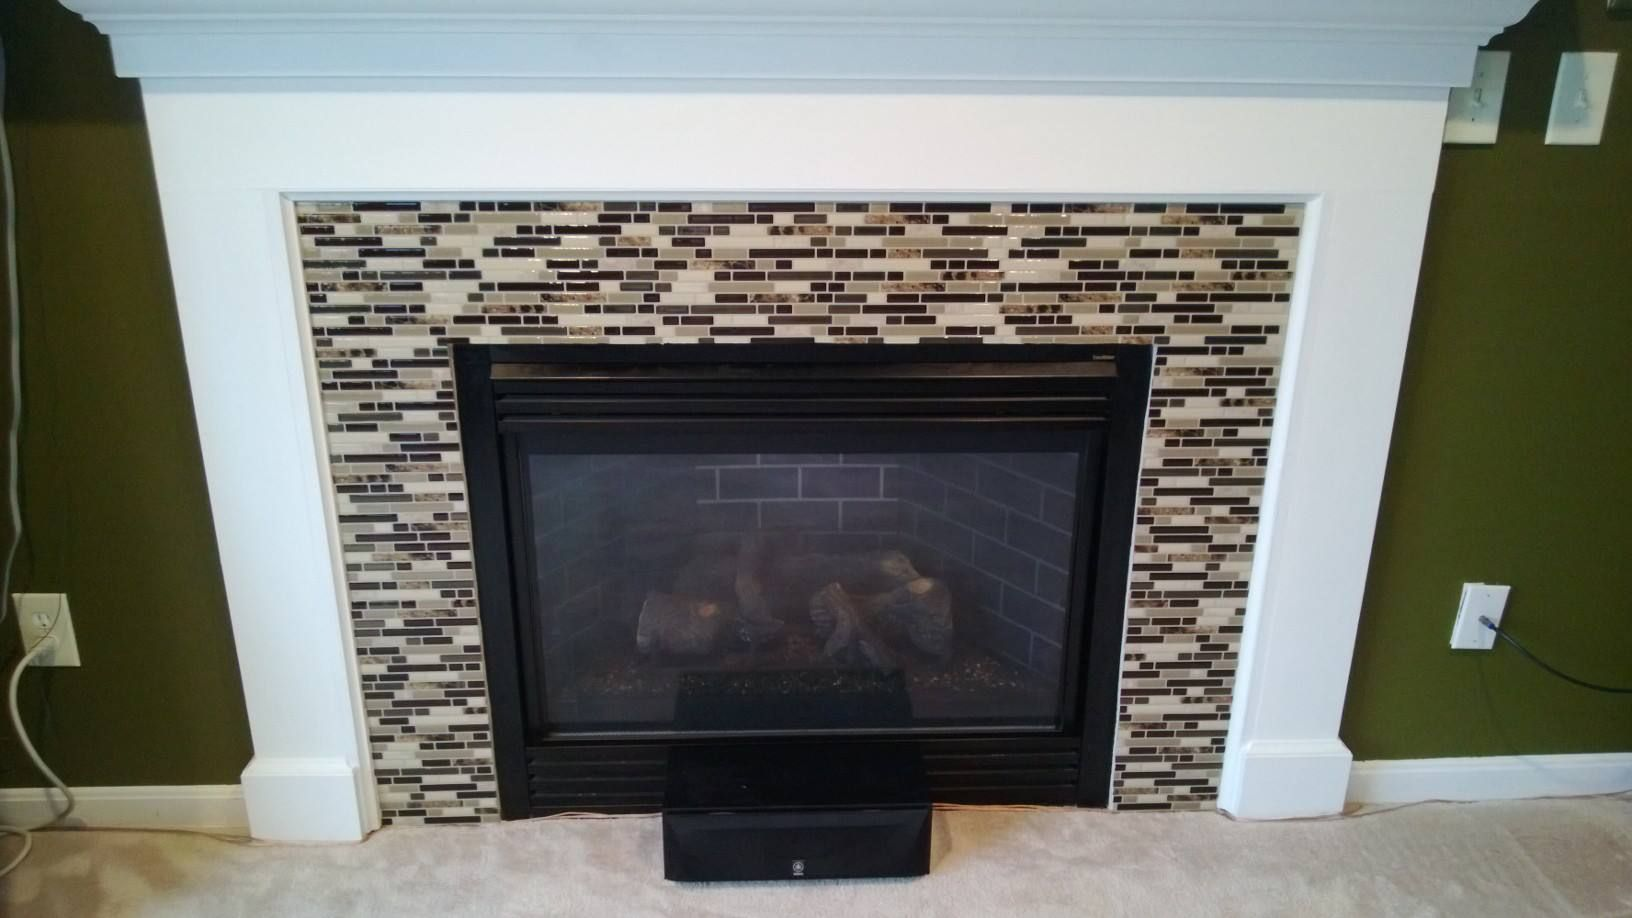 Diy Tile Fireplace Makeover With Peel And Stick Tiles Diy Fireplace Makeover Fireplace Tile Fireplace Makeover